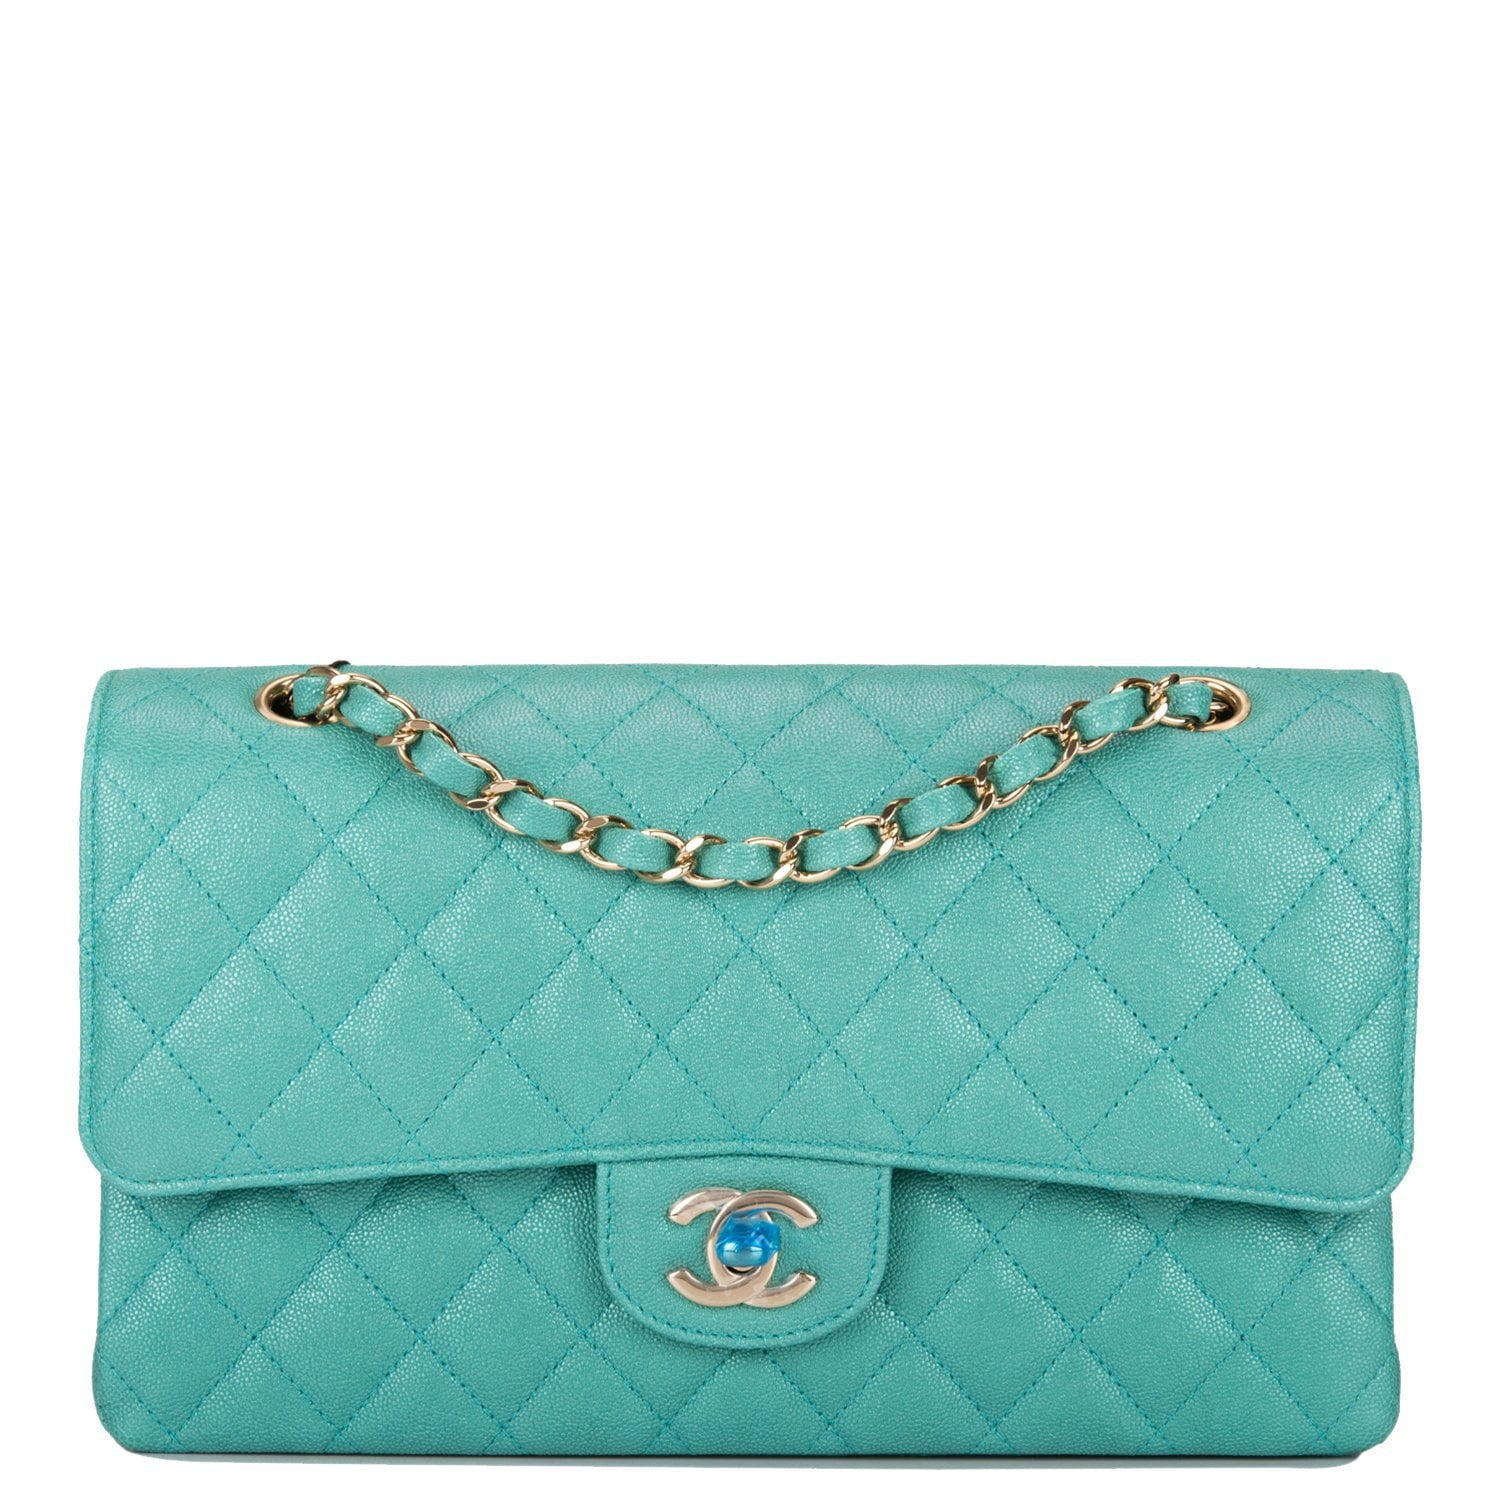 d532ce4c34f3 Chanel Iridescent Turquoise Quilted Caviar Medium Classic Double Flap –  Madison Avenue Couture